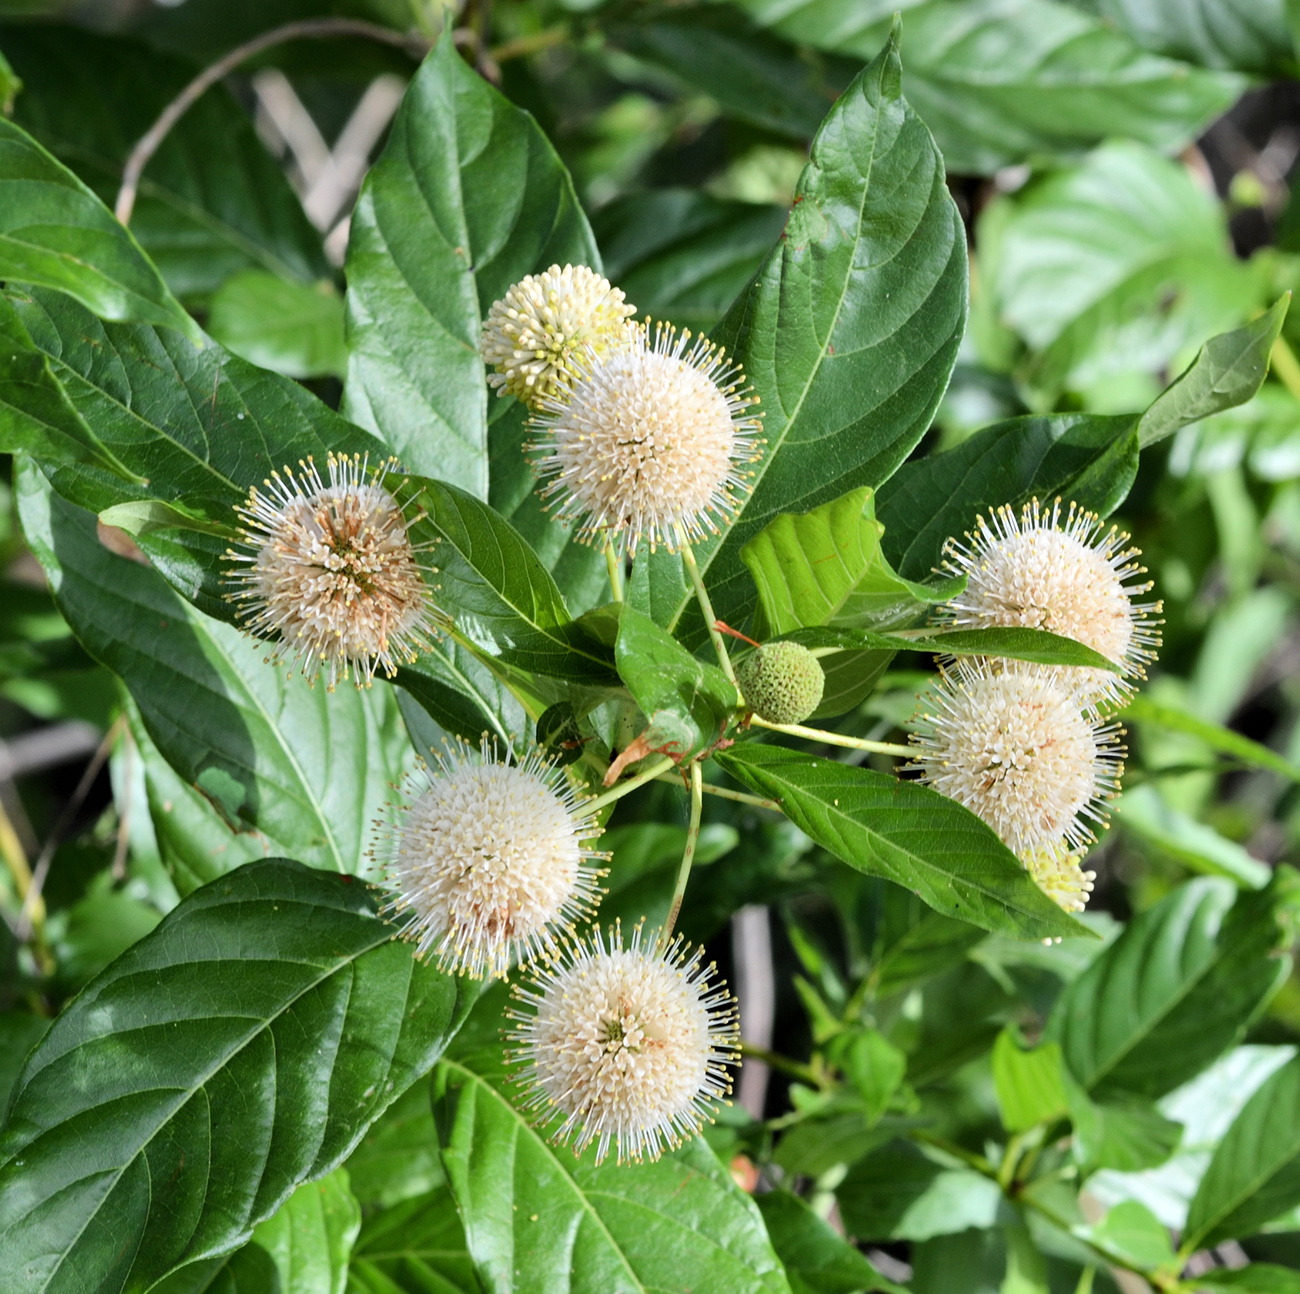 Blooms and leaves of the Buttonbush Shrub, perfect for any backyard